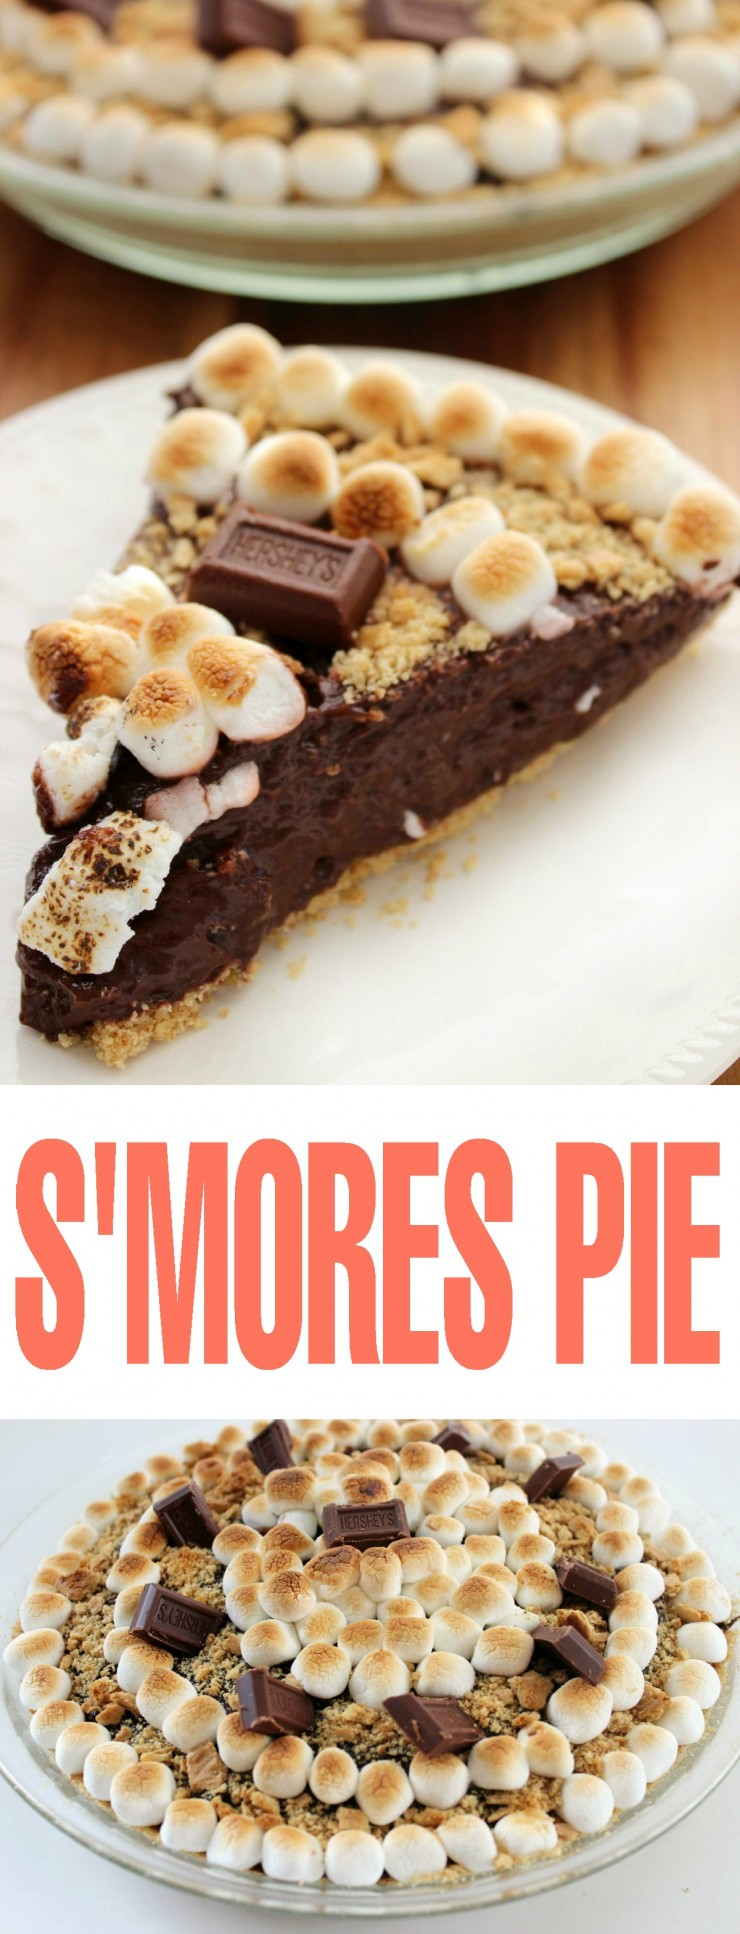 This No Bake S'Mores Pie is a fun twist on the summer camping dessert classic recipe.